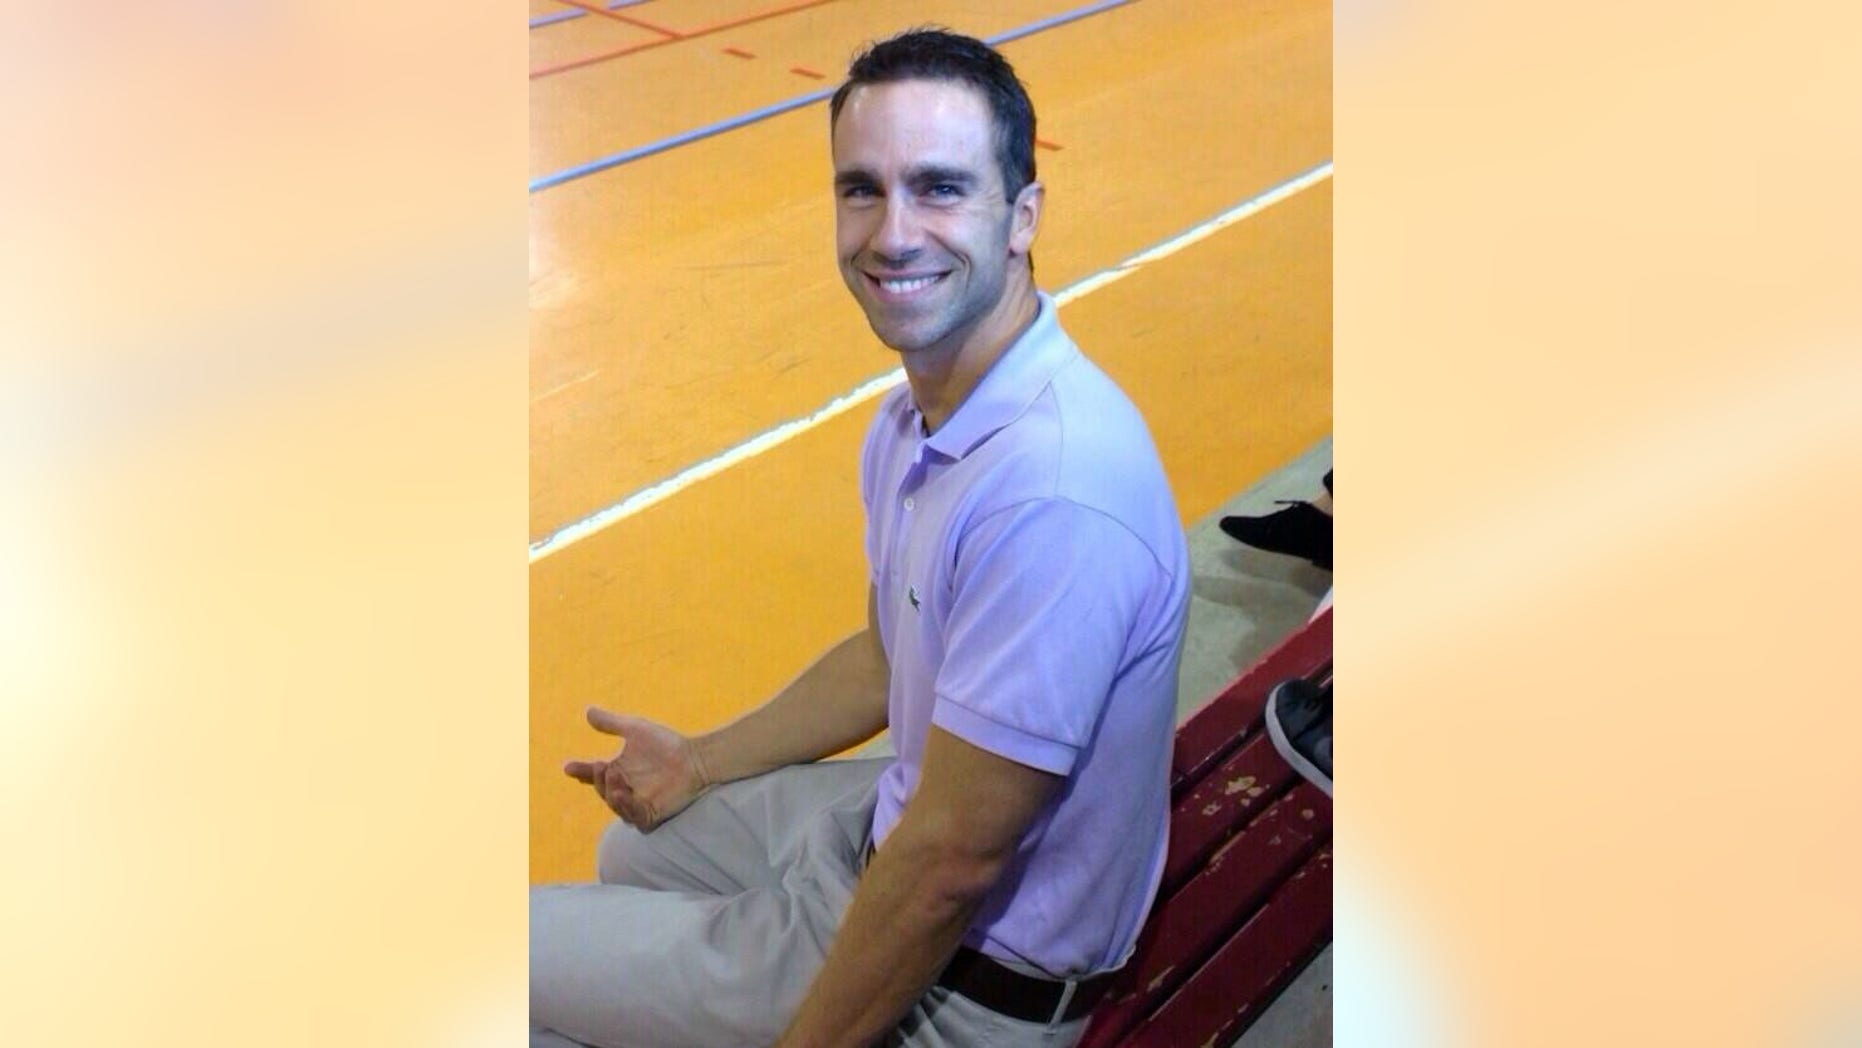 This undated photo provided by Omaima ElFaitori shows Ronald Thomas Smith II. Smith, an American chemistry teacher, was shot to death as he was jogging in Benghazi on Thursday, Dec. 5, 2013. (AP Photo/Omaima ElFaitori)